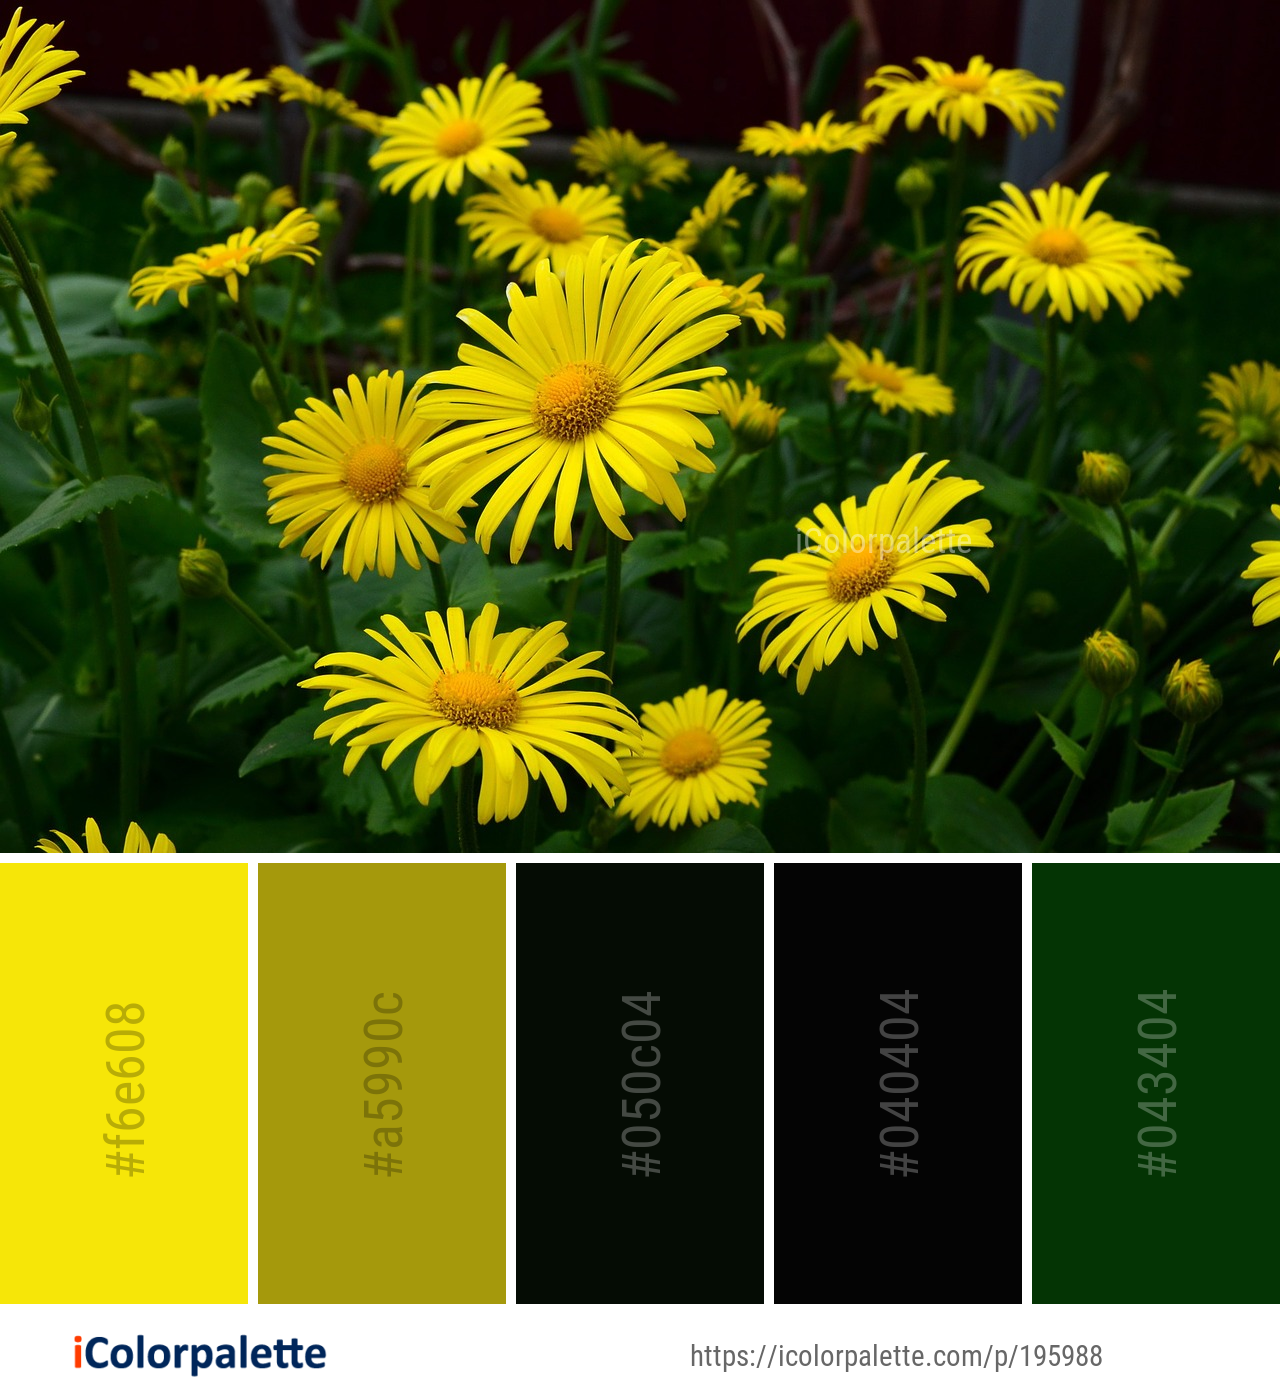 Color Palette Ideas From 8835 Flower Images Icolorpalette Color Palette Yellow Plants Plant Images